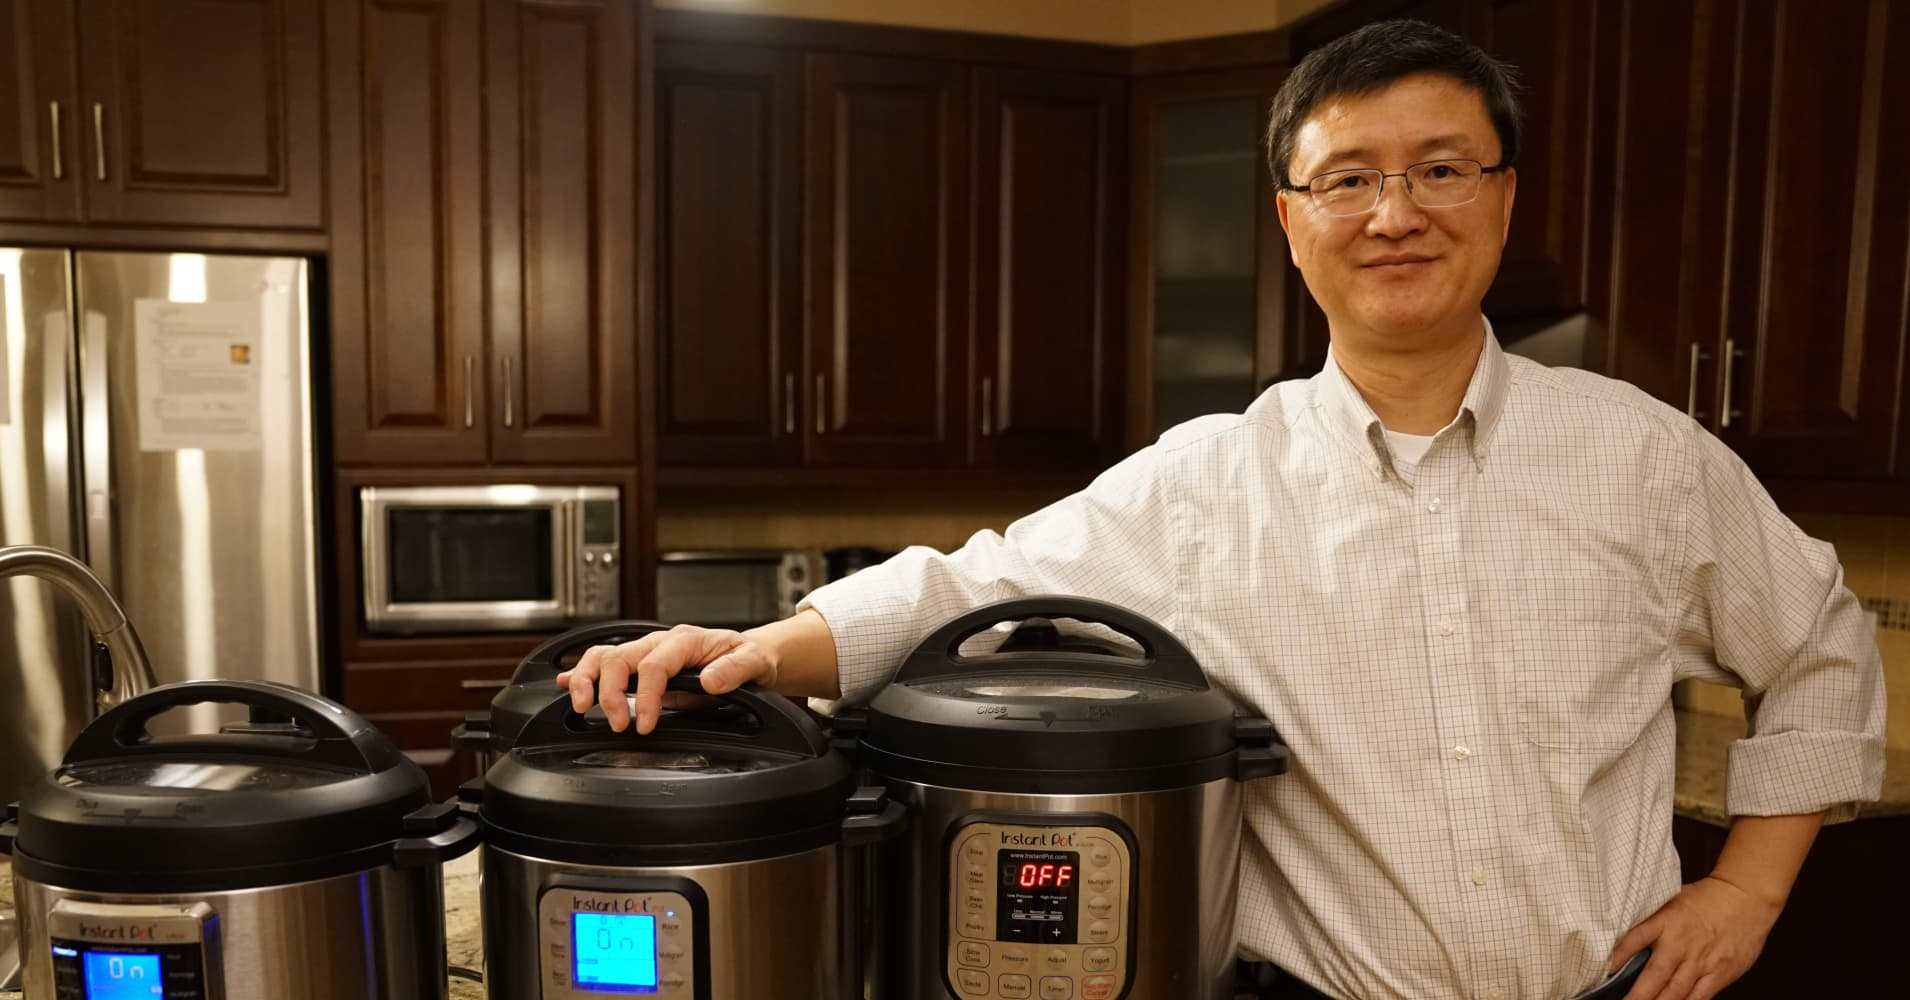 The Instant Pot is selling like crazy on Amazon—and its PhD inventor says he's read all 39,000 reviews